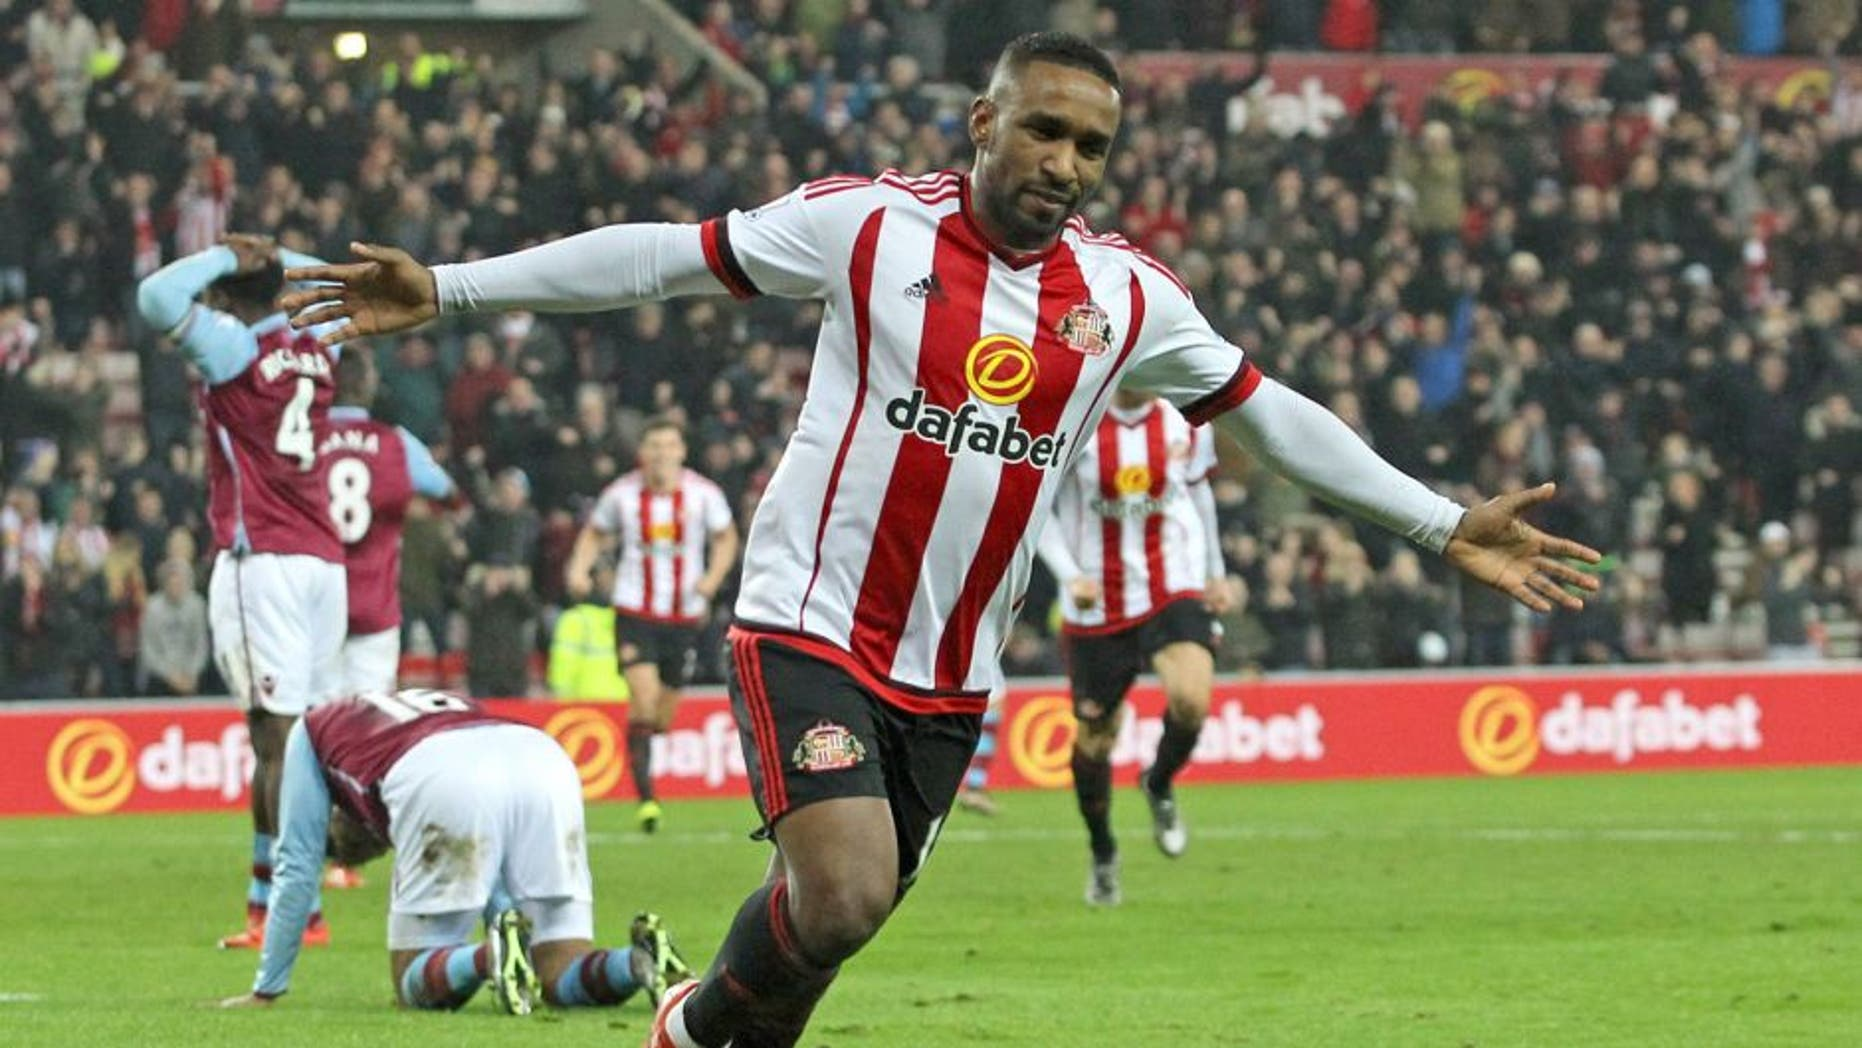 SUNDERLAND, UNITED KINGDOM - JANUARY 02 : Jermain Defoe of Sunderland celebrates after he scores the second Sunderland goal during the Barclays Premier League match between Sunderland and Aston Villa at the Stadium of Light on January 02, 2016 in Sunderland, England. (Photo by Ian Horrocks/Sunderland AFC via Getty Images)